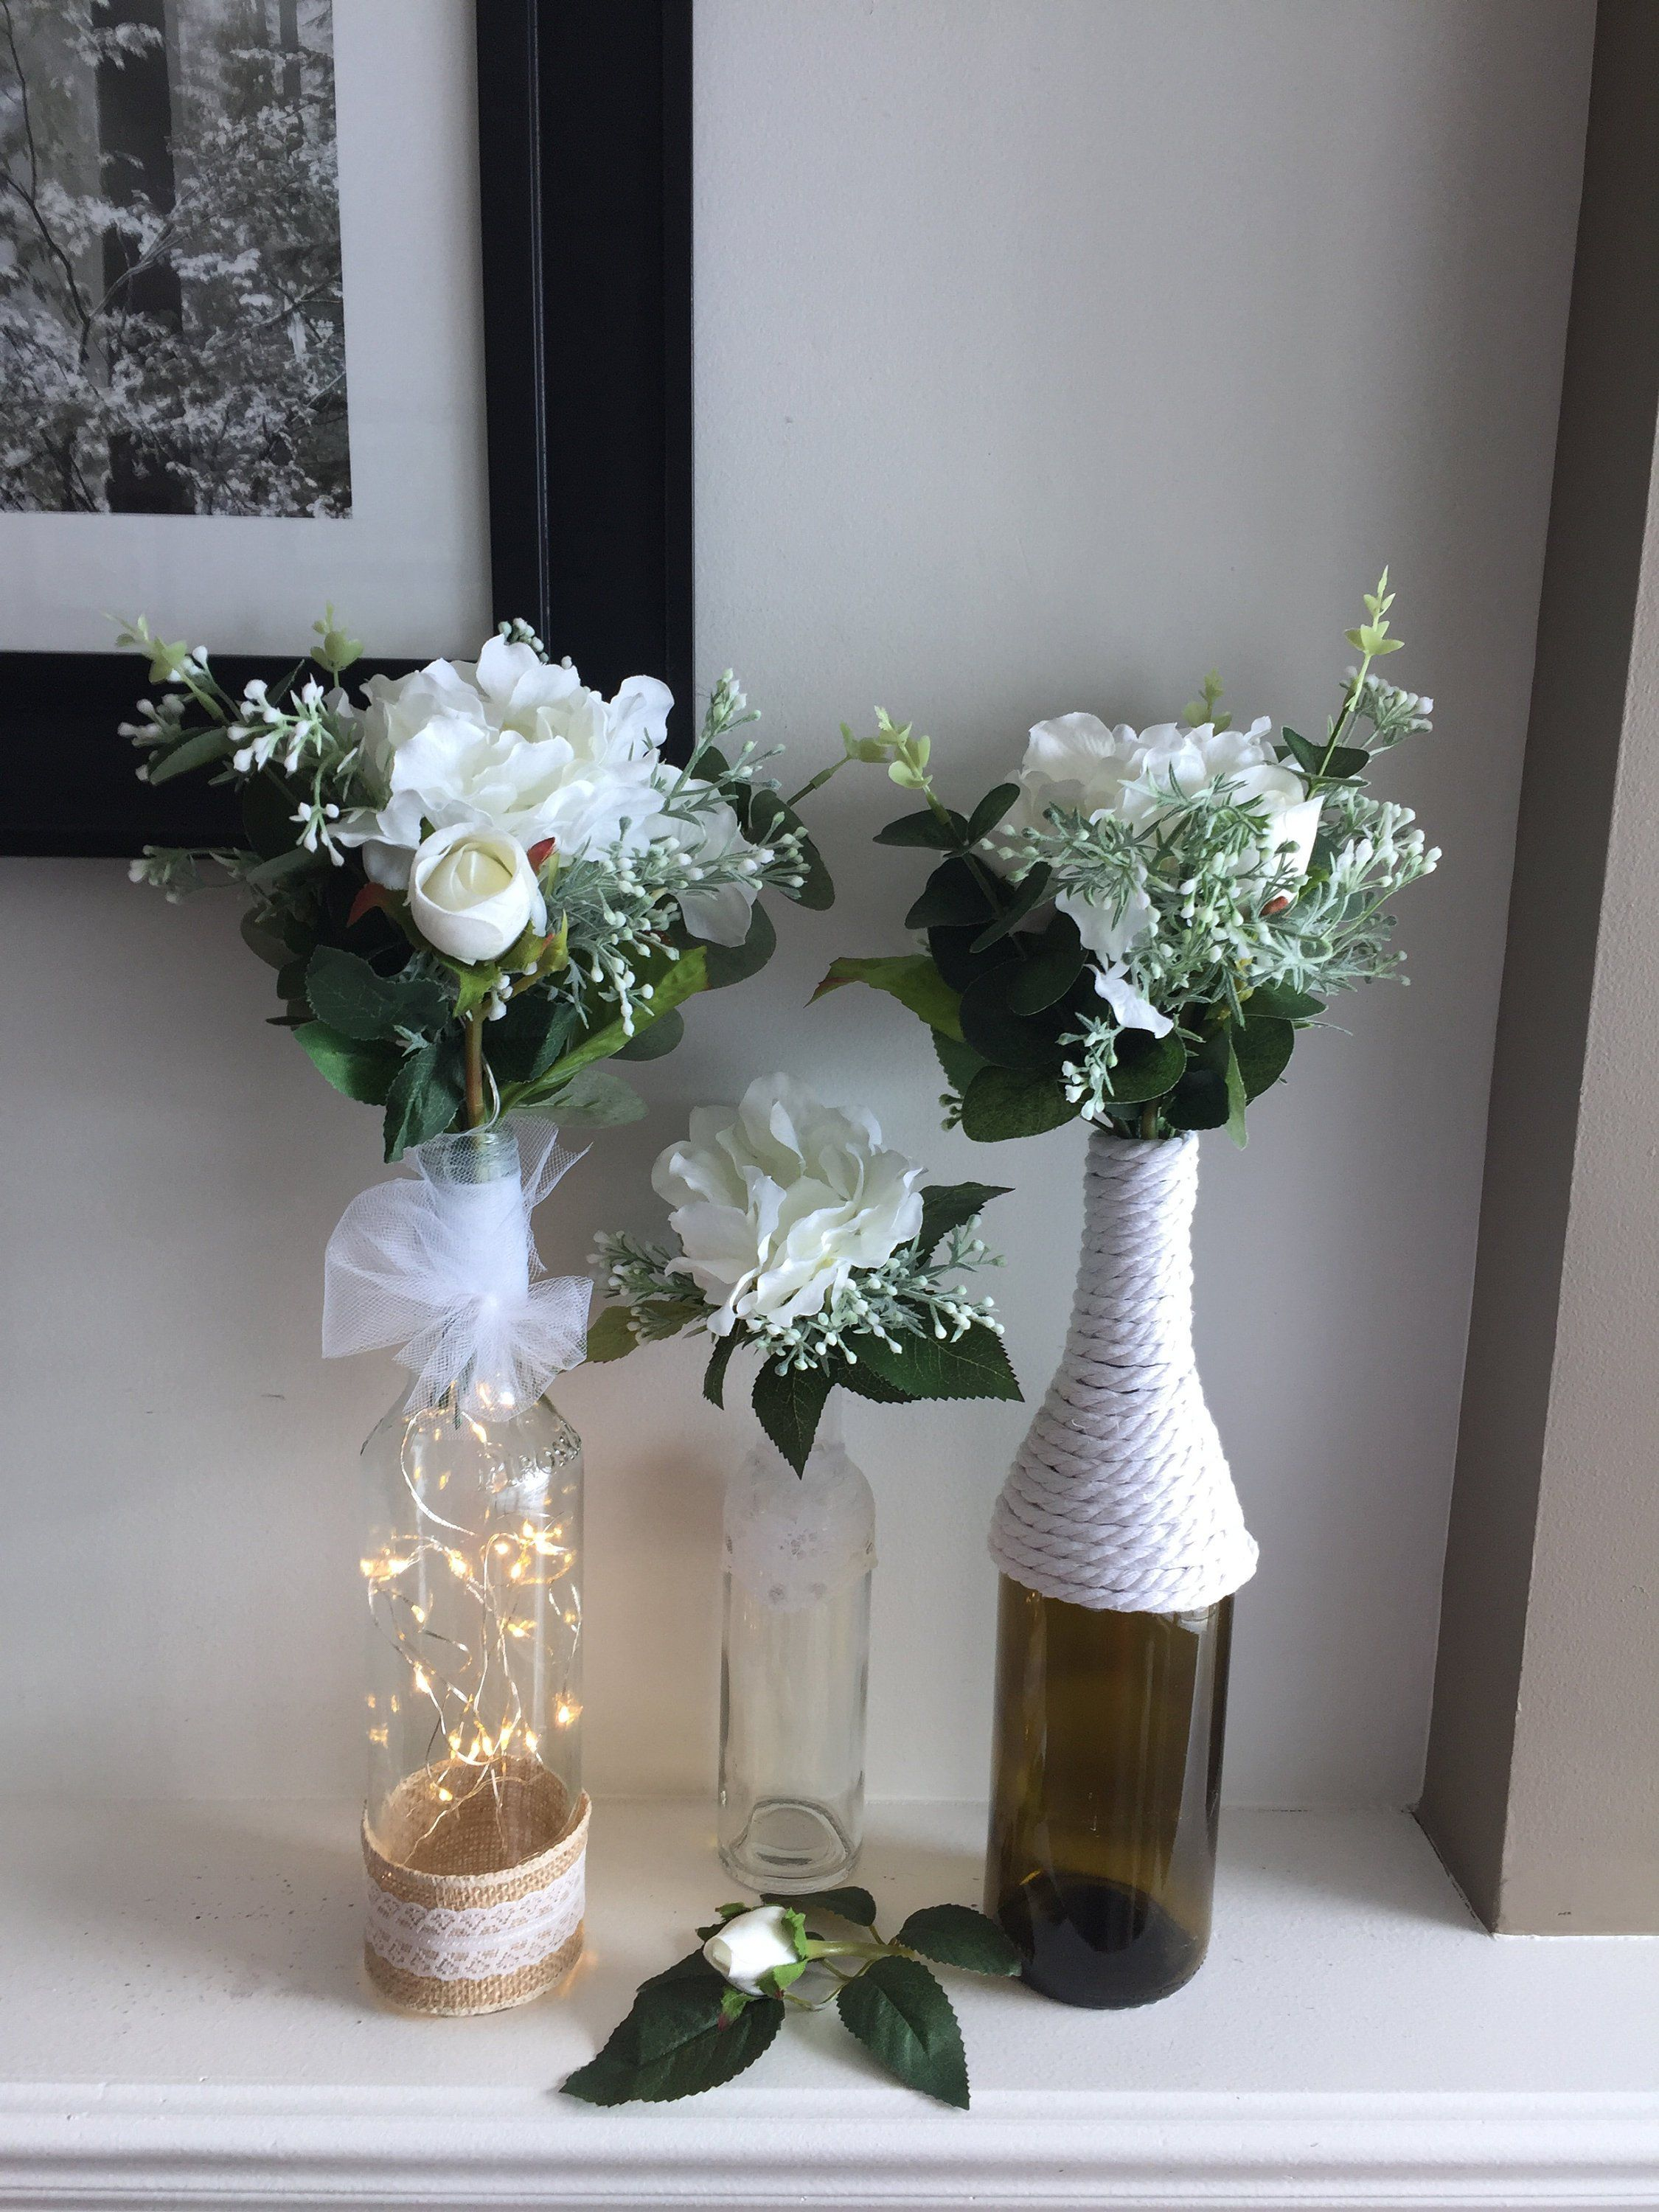 Photo of Set of 3 Wine Bottles centerpiece with flowers included, Wedding table decorations, Wine bottle vase, Flowers centerpieces, Decorated bottle